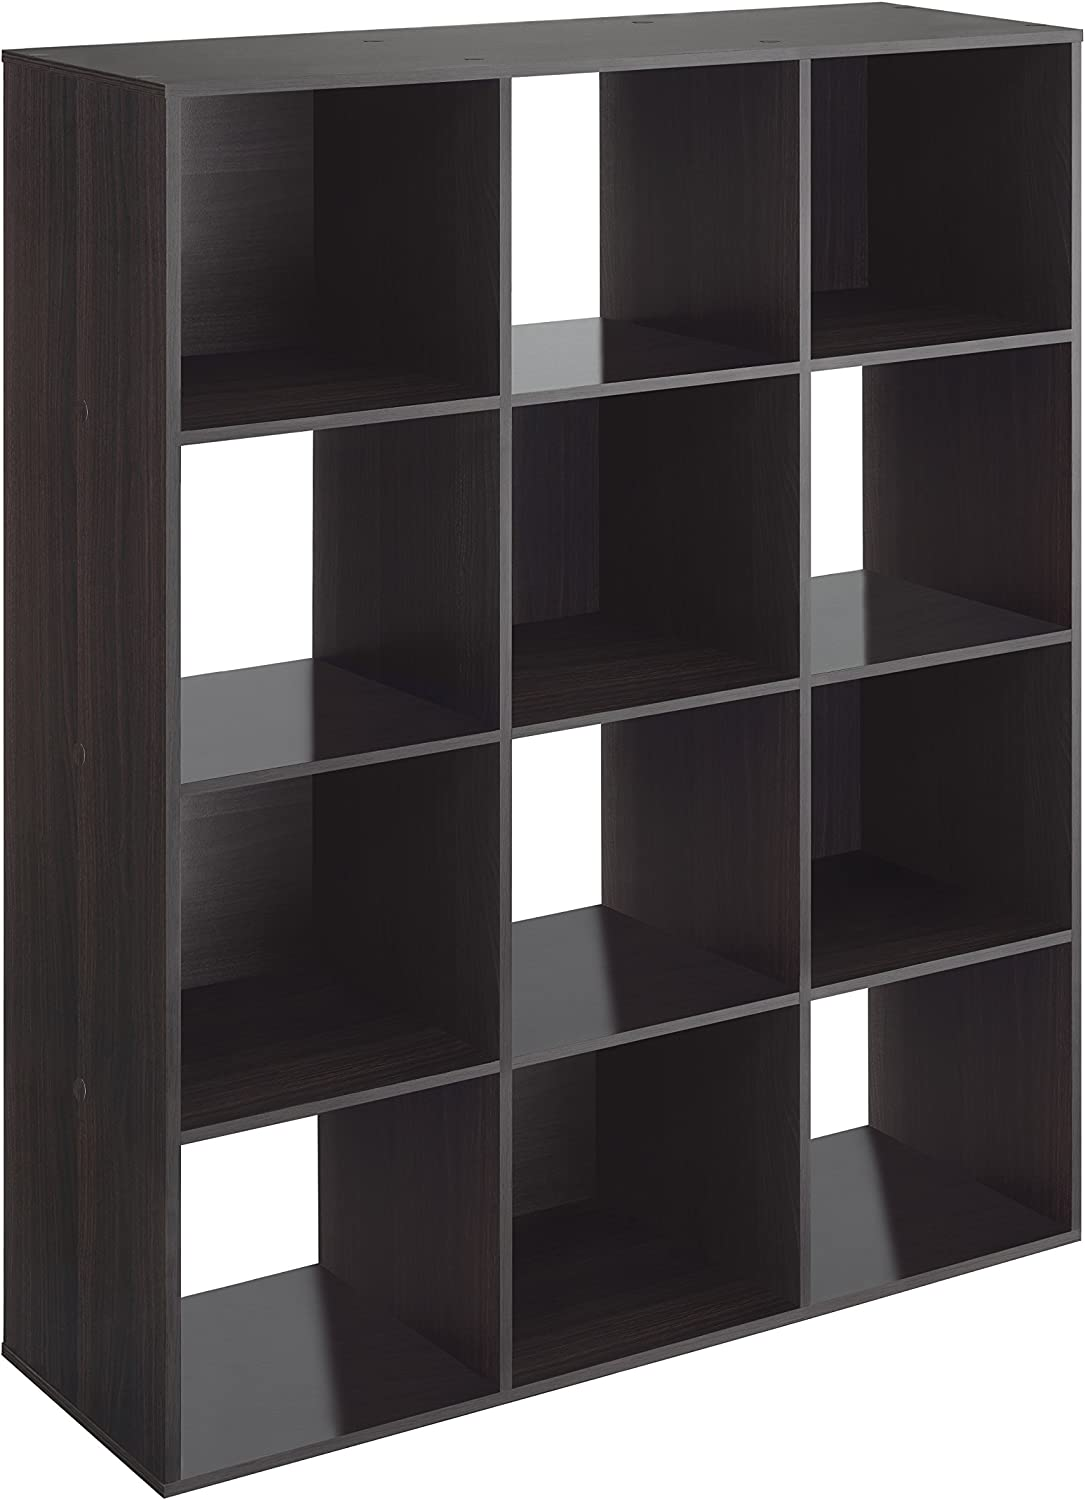 Whitmor 12 Cube Organizer famous Espresso New products world's highest quality popular -